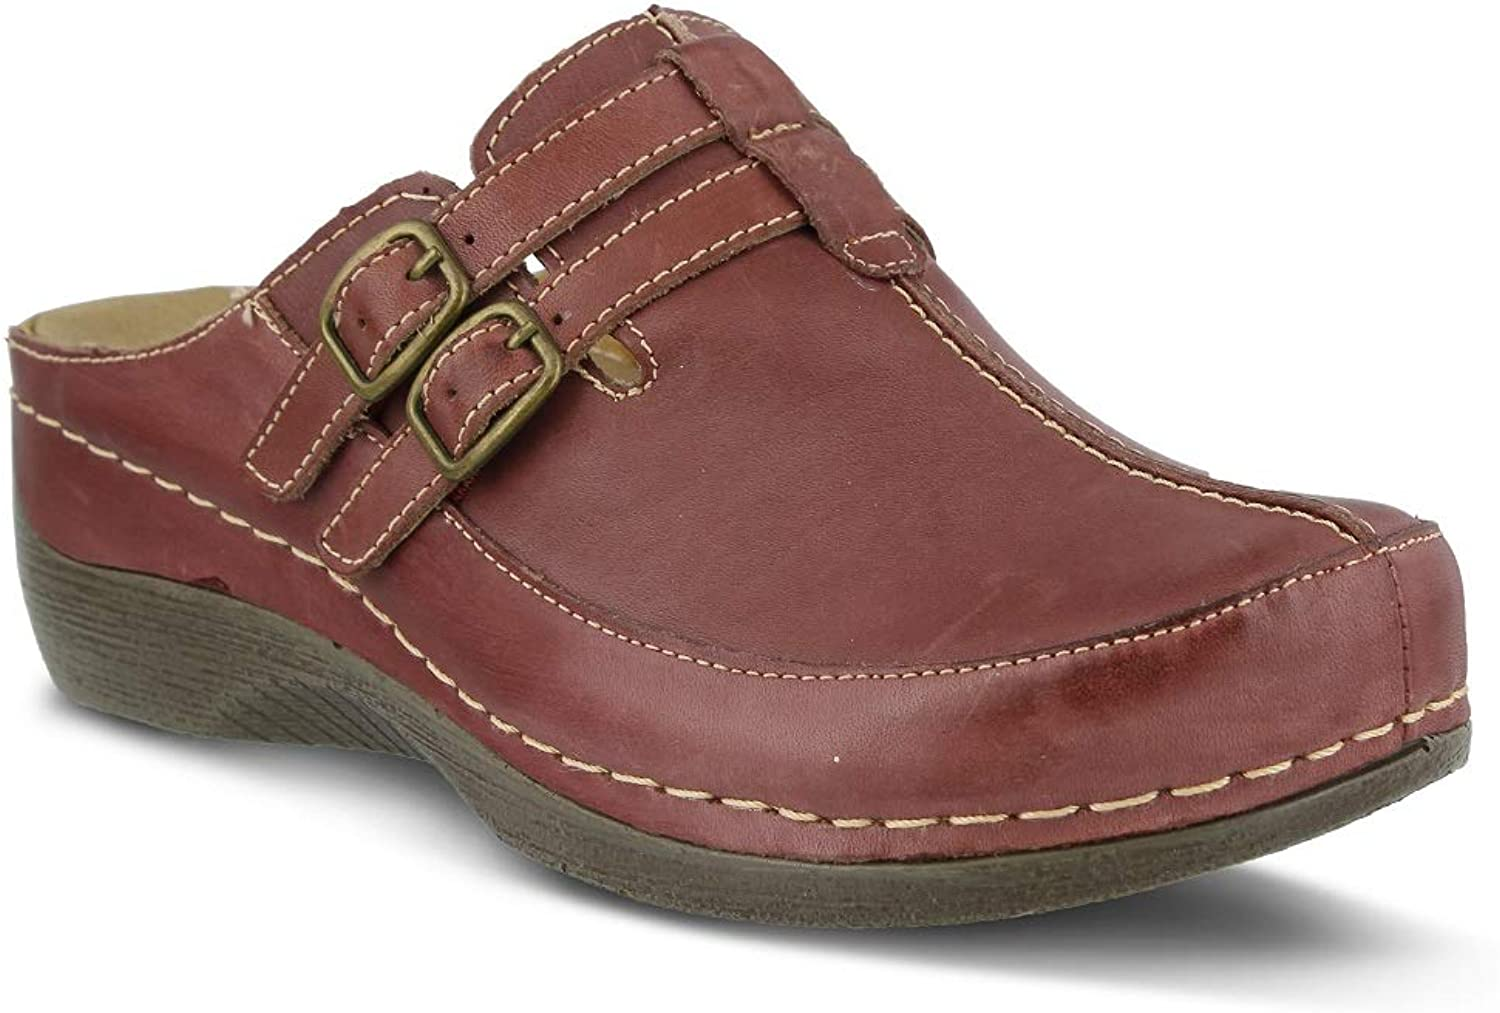 Spring Step Women's Happy Clog & Mules   color Bordeaux   Leather Clog & Mules